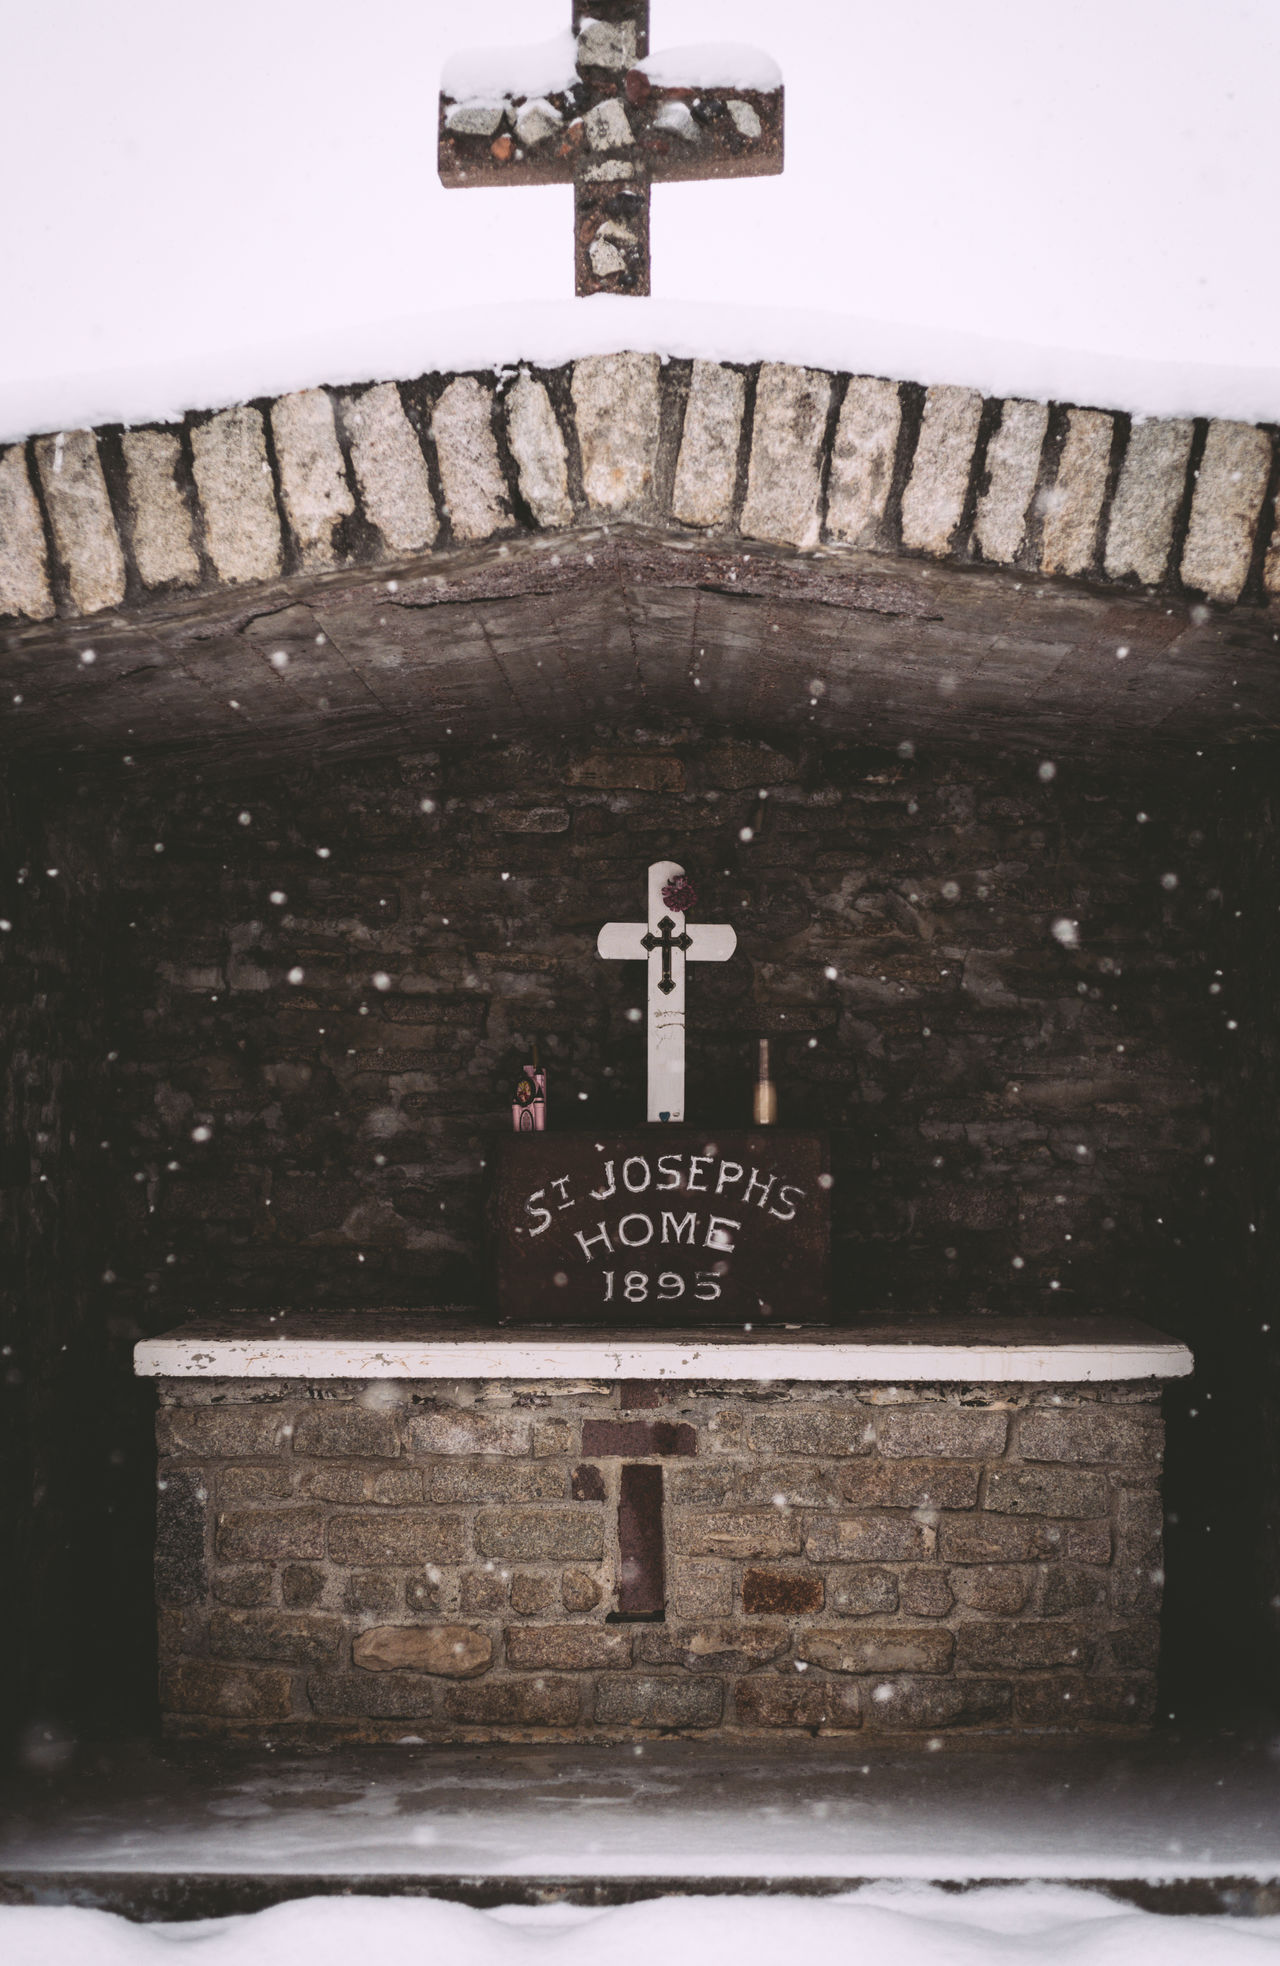 Architecture Built Structure Cross Cross Crucifix Day Heavy Snow Monument No People Outdoors Place Of Worship Religion Snow Flakes Snowing Spirituality